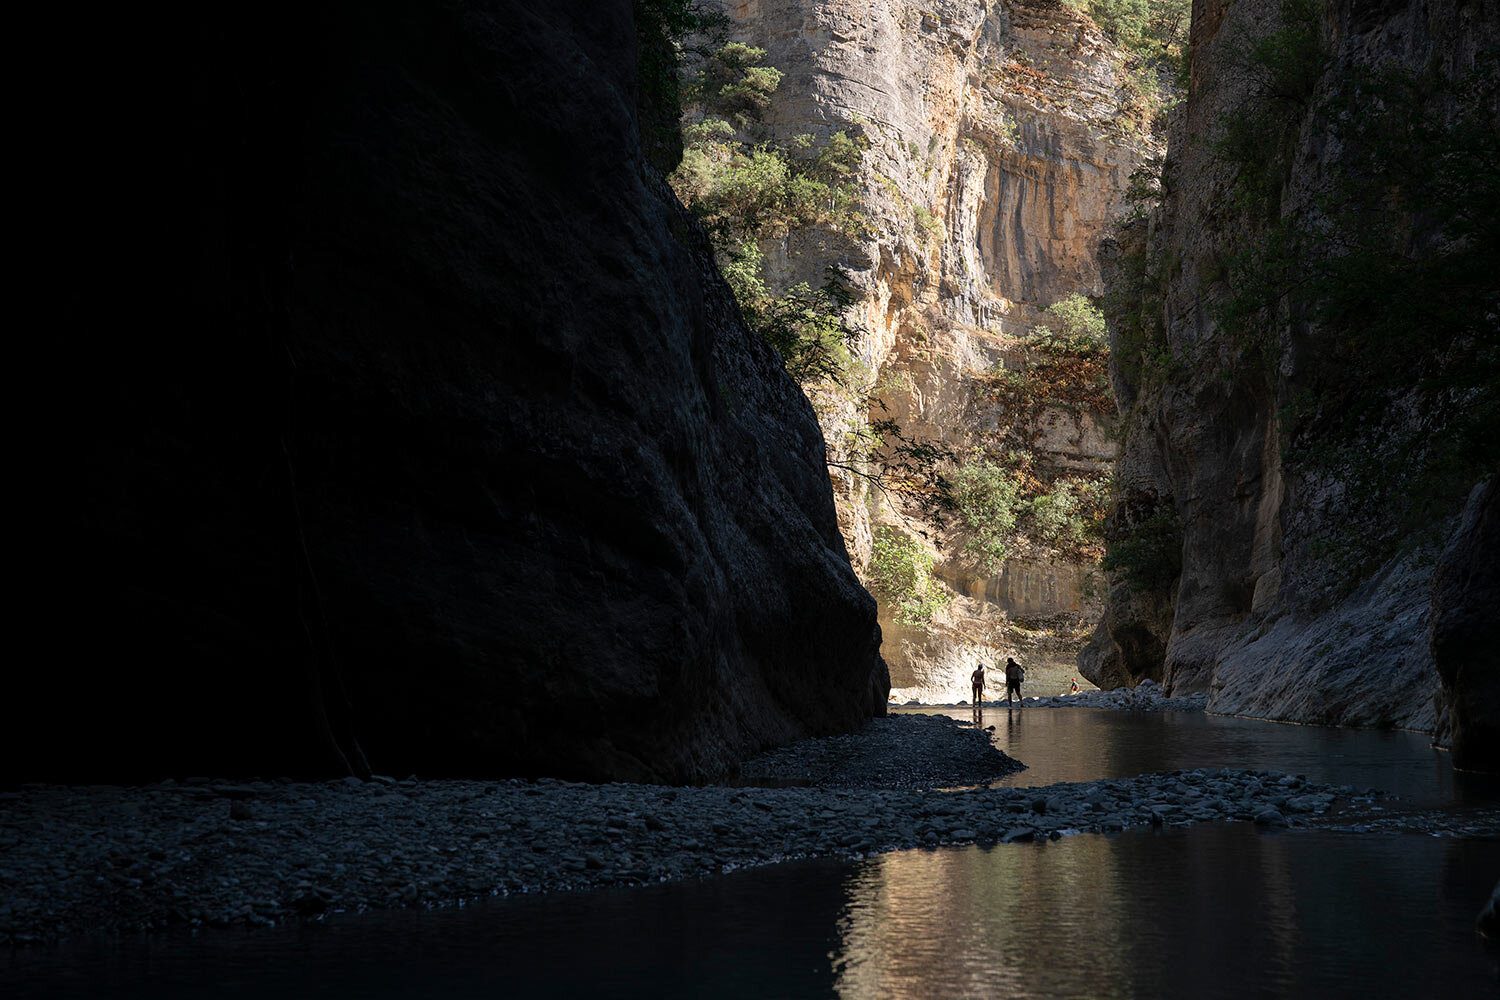 People walk along the Langarica River, a tributary to the Vjosa near Permet, Albania. (AP Photo/Felipe Dana)